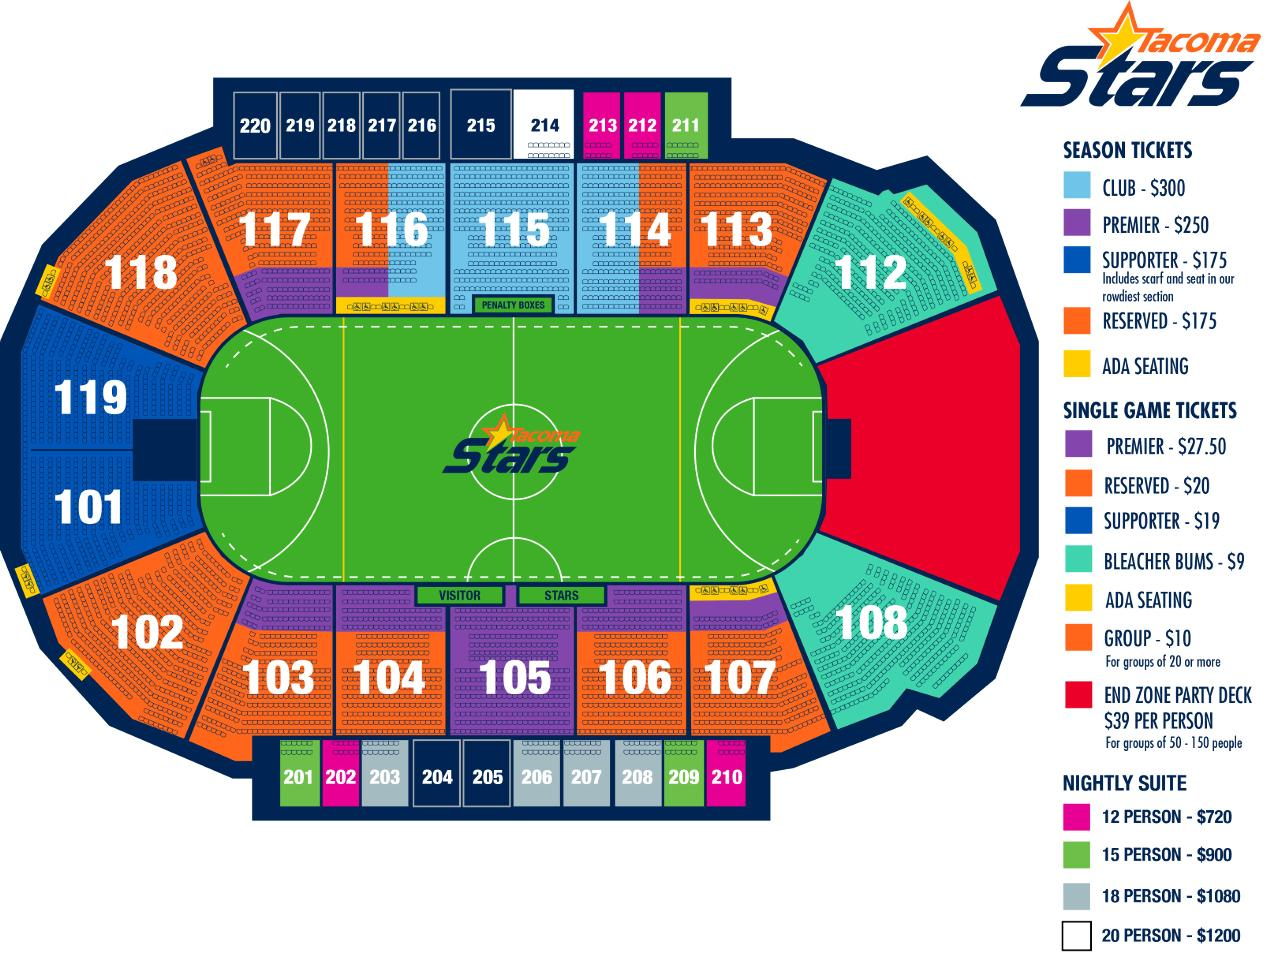 Tacoma stars seating chart showare center home of seattle